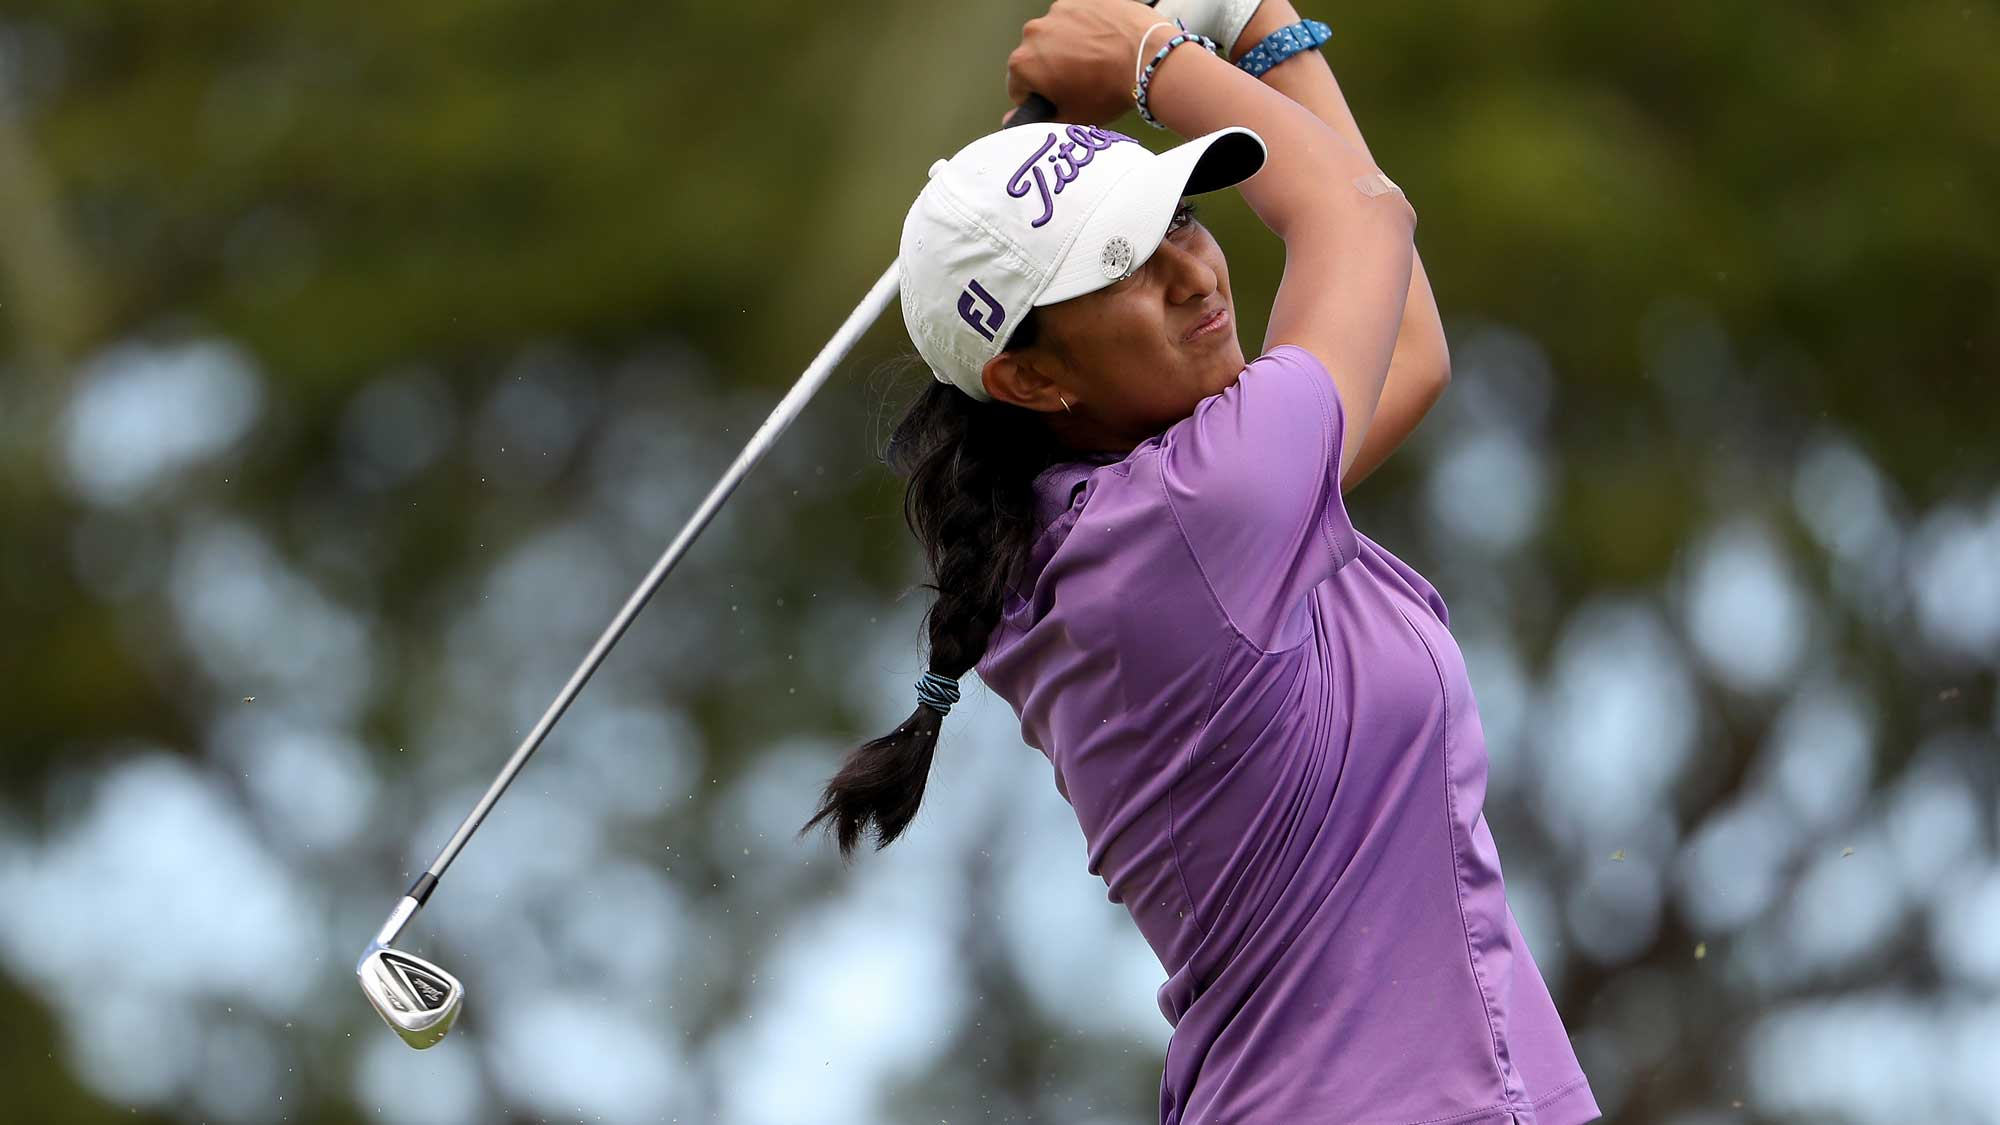 Aditi Ashok of India plays a tee shot on the eighth hole during the first round of the LPGA LOTTE Championship Presented By Hershey